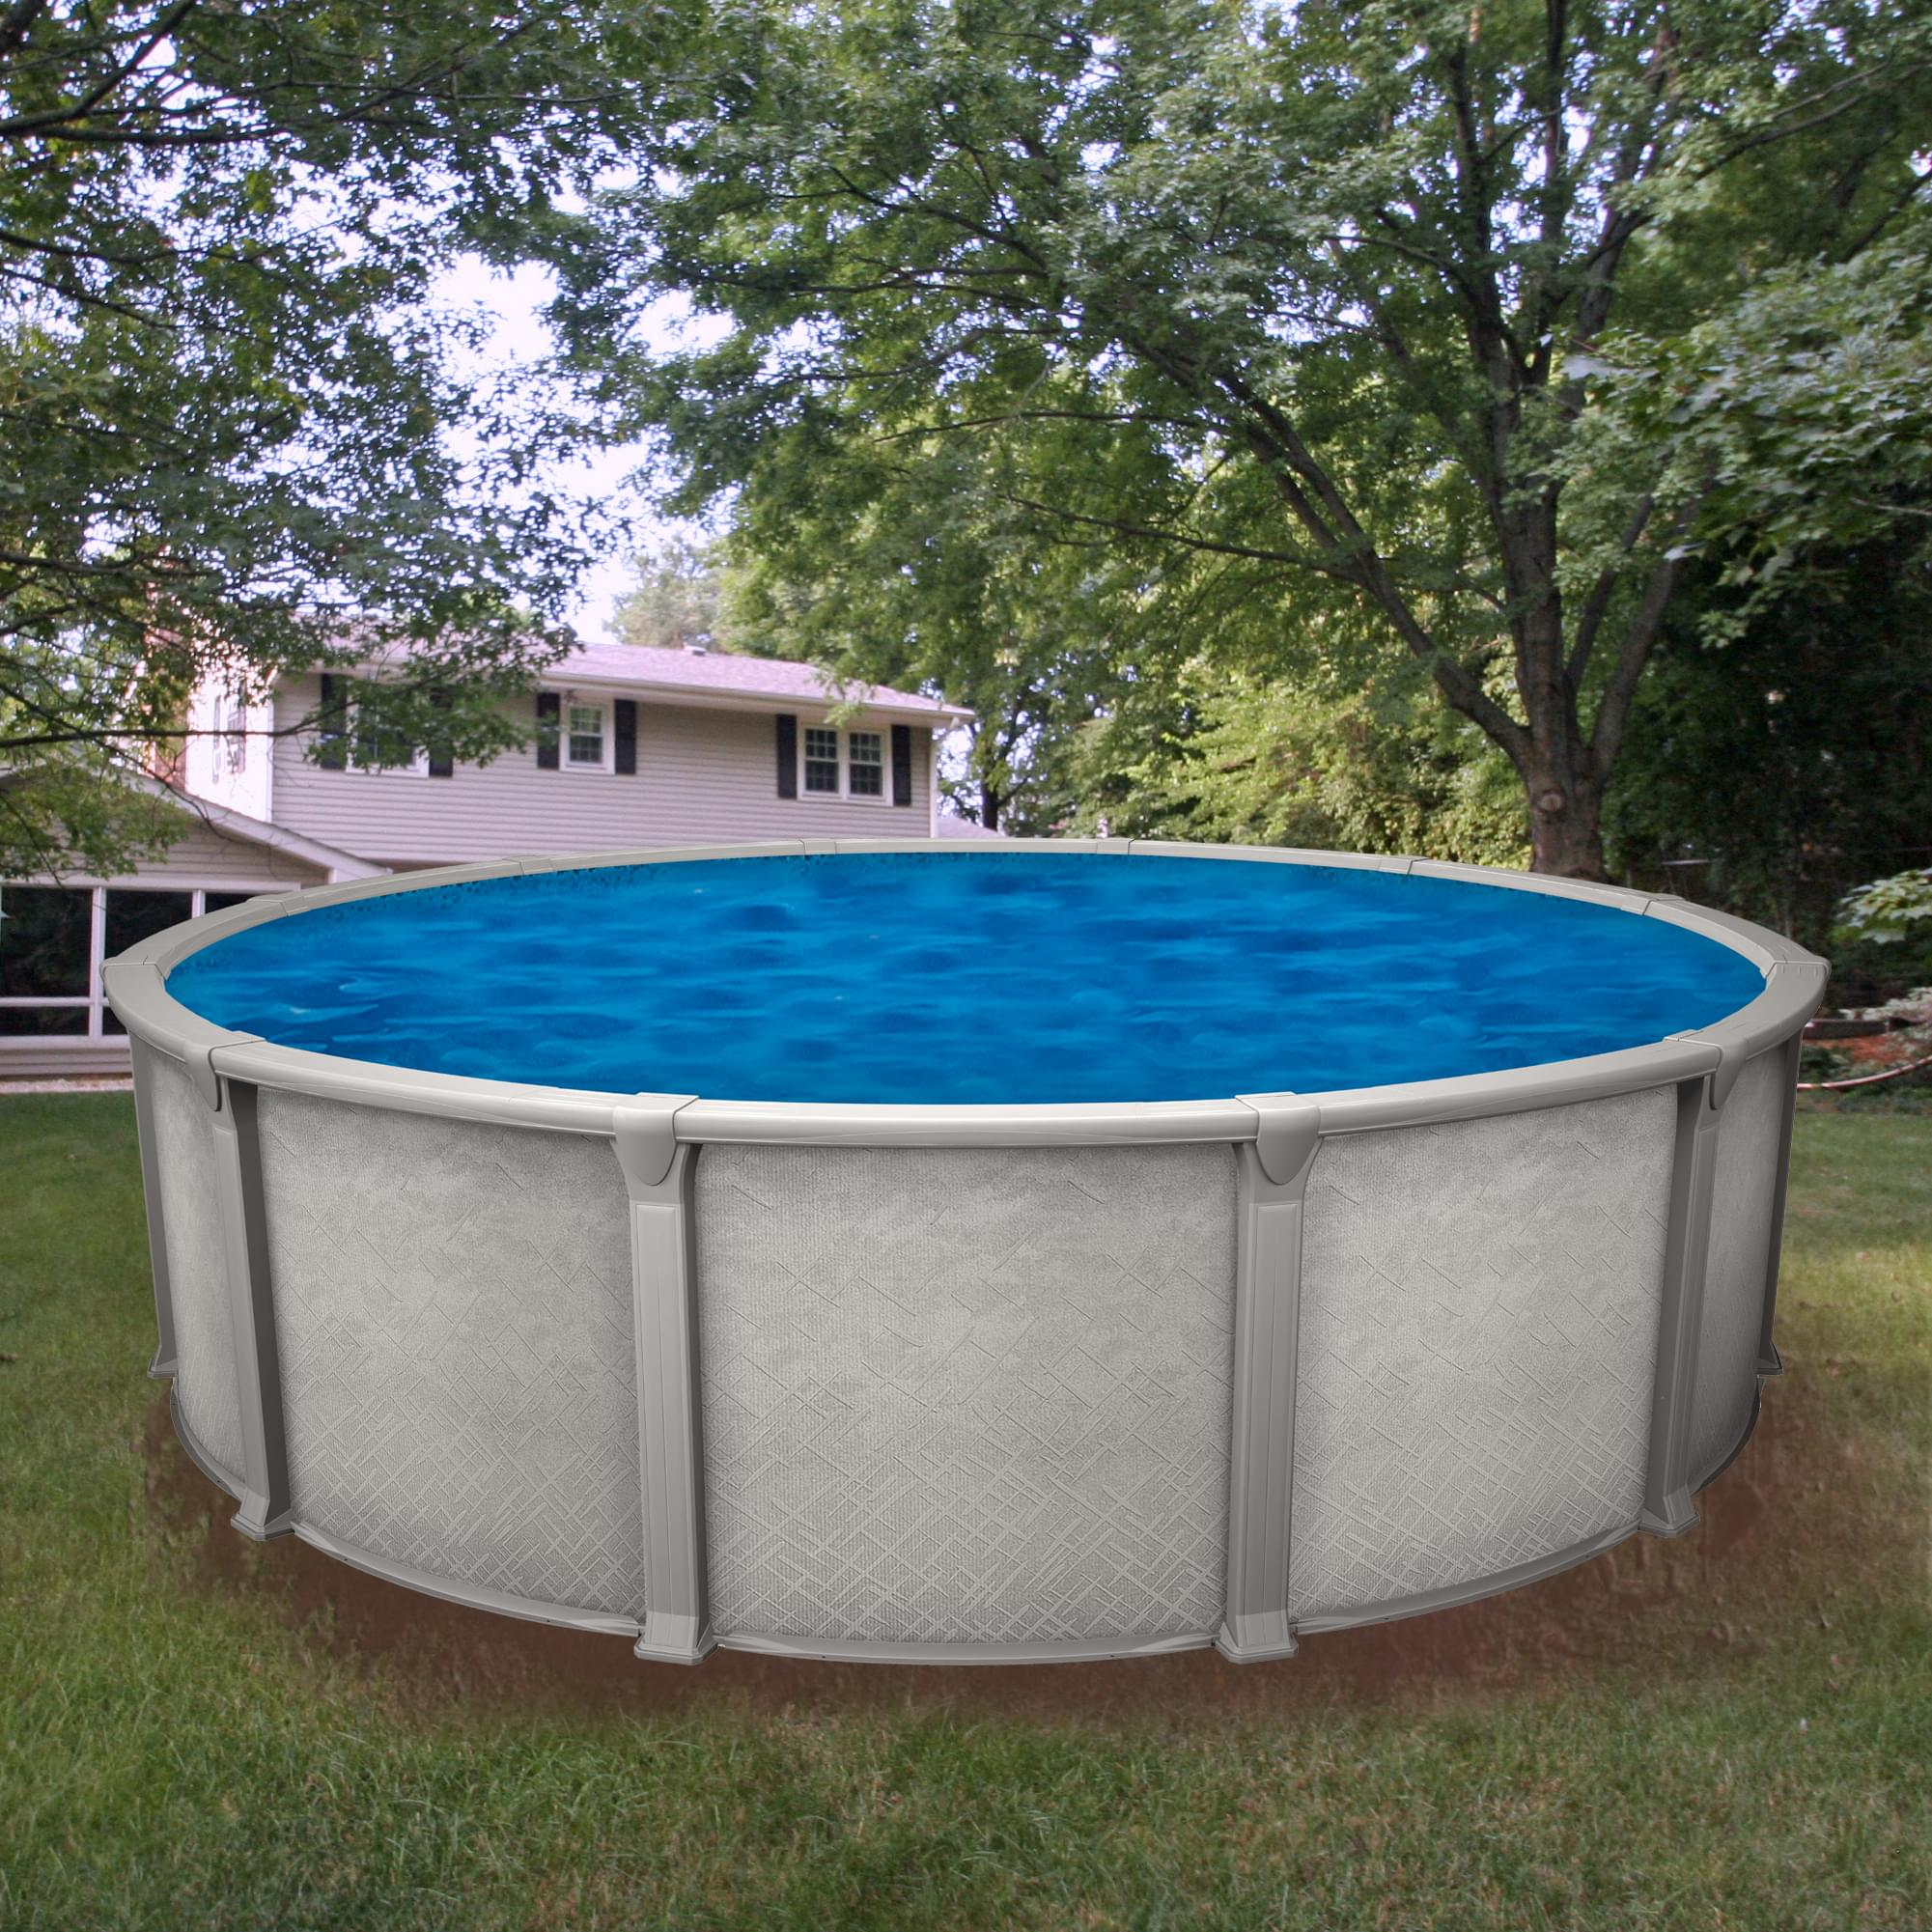 Galaxy 27 ft round above ground pool pool supplies canada for Pool supplies